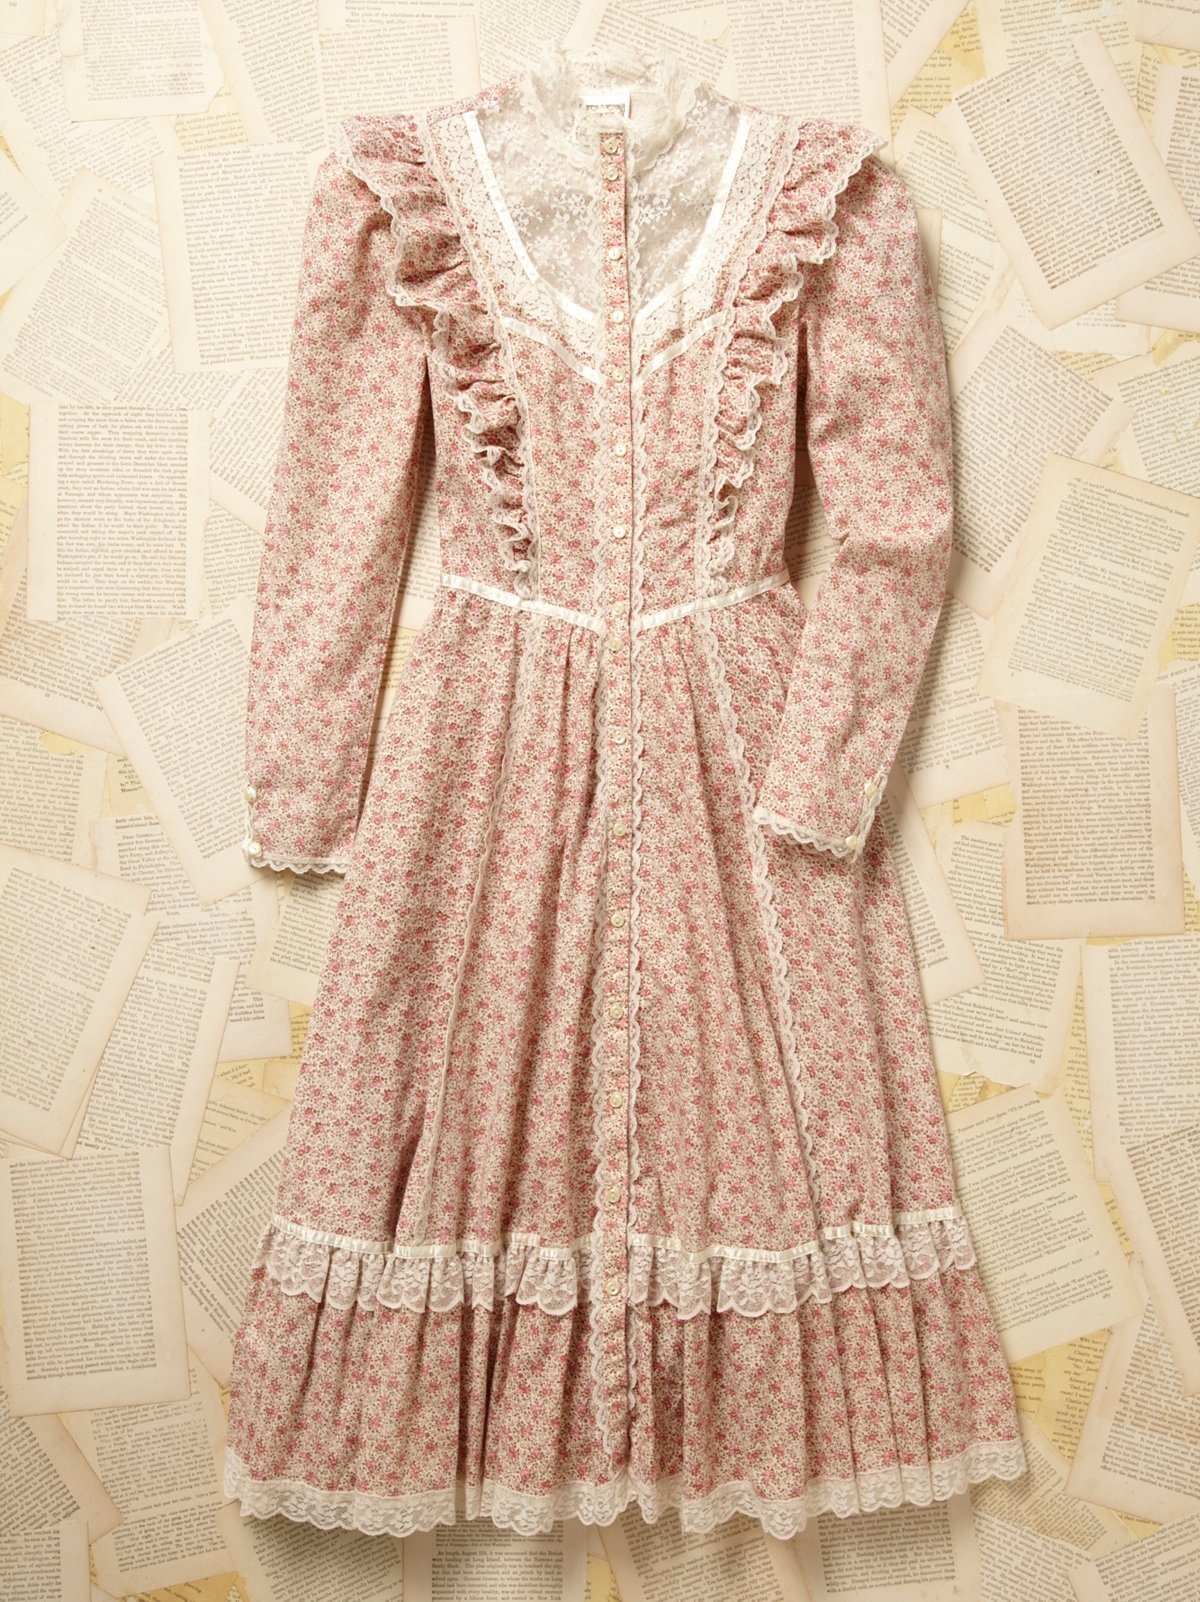 Vintage 1970s Gunne Sax Floral Ruffle Neck Dress